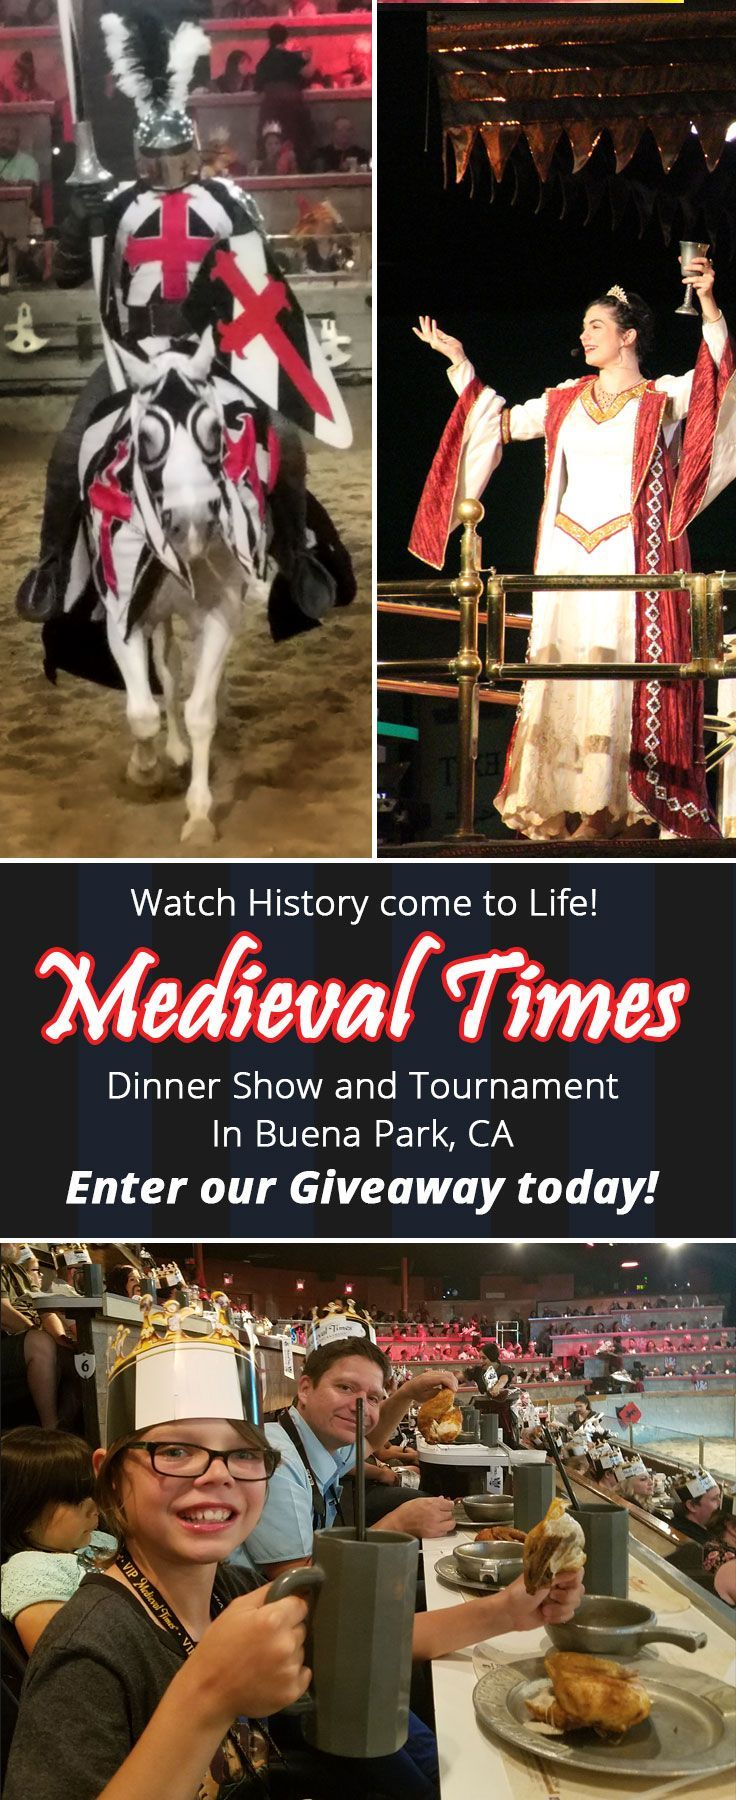 Jual Rodeo Bundling 6 Terbaru 2018 5 19 Best Sweepstakes Images On Pinterest At Walmart And Medieval Times Dinner Show